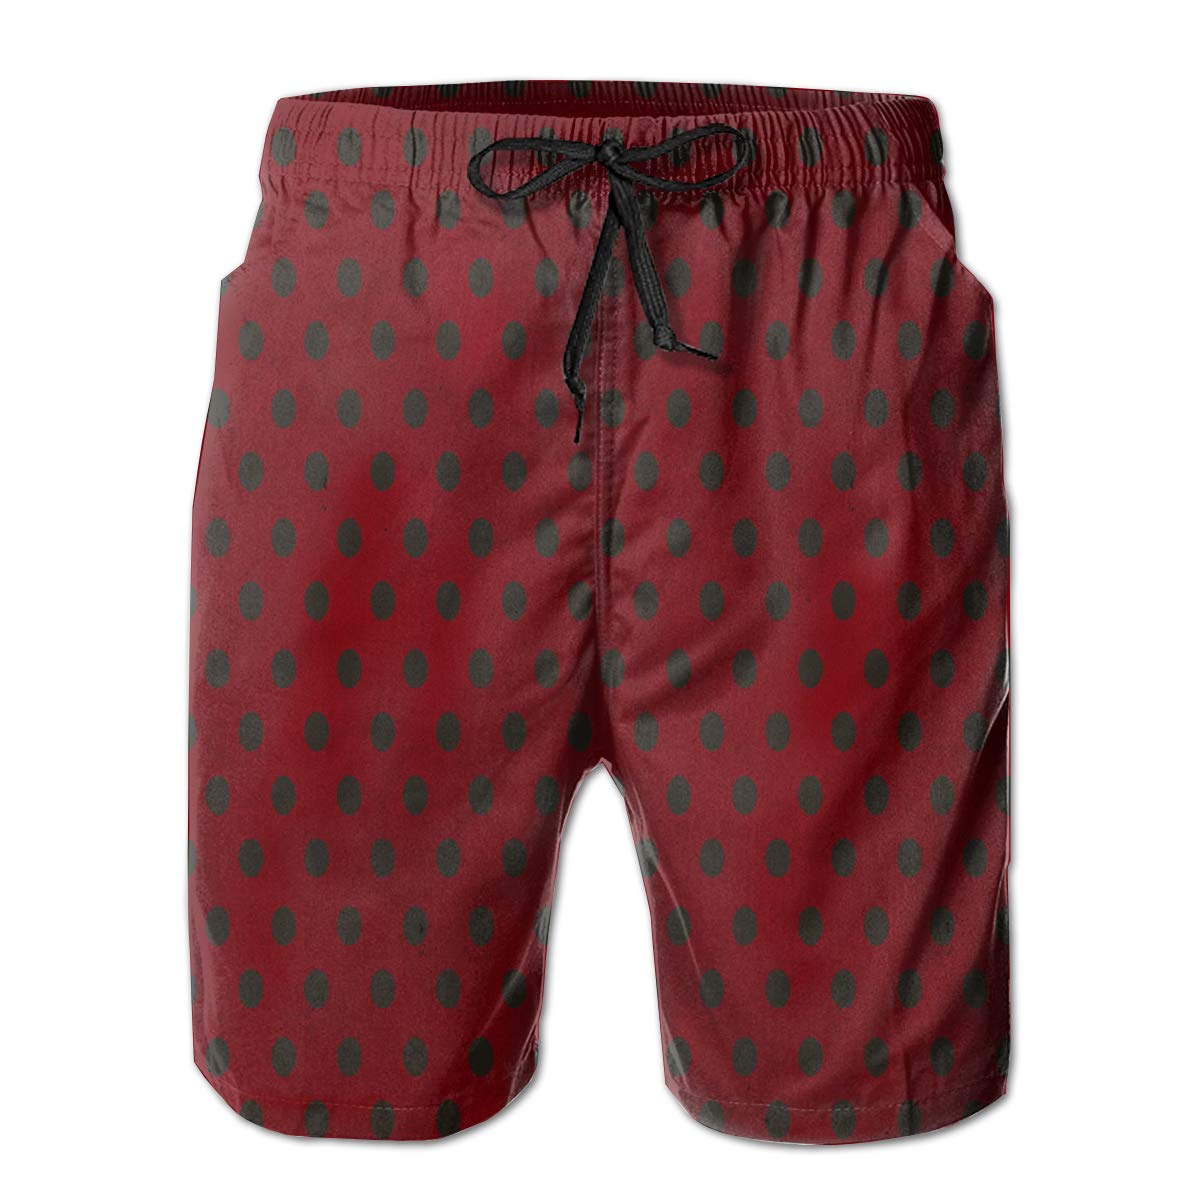 Red Polka Dots Mens Beach Shorts Linen Casual Fit Short Swim Trunks